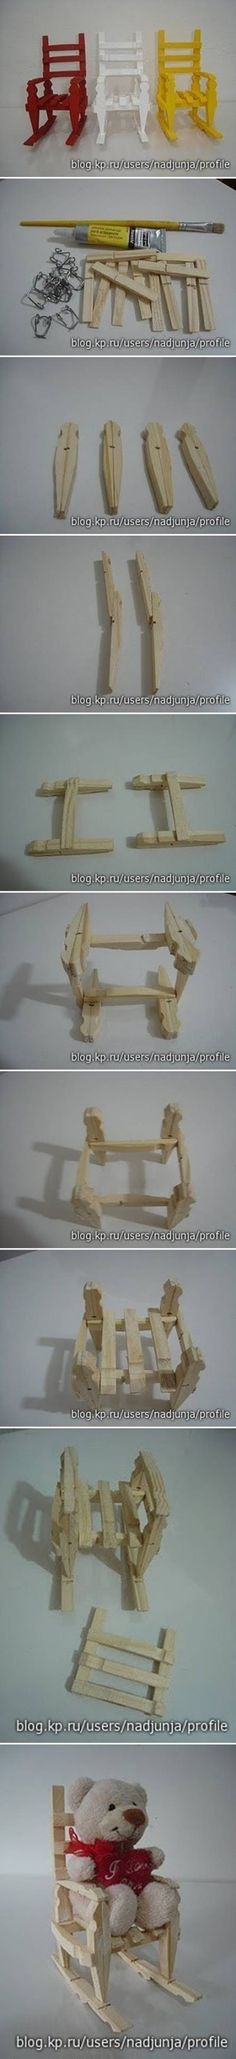 How to build Clothespin Rocking Chair step by step DIY instructions 400x3490